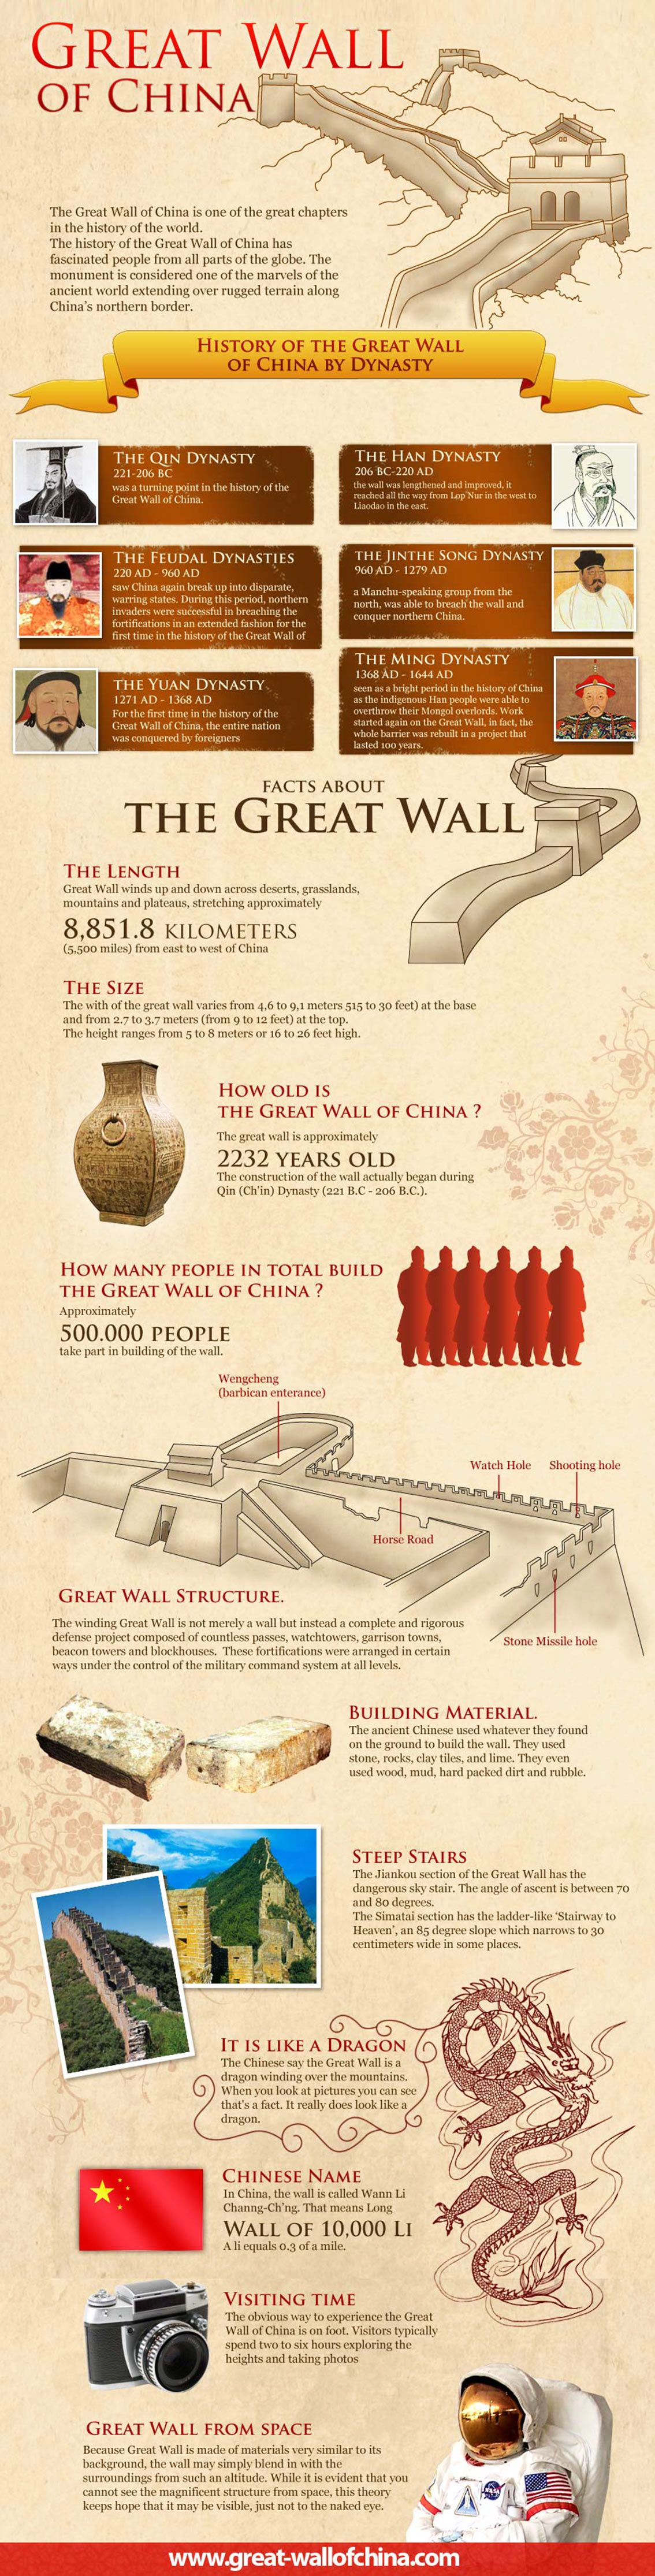 History of The Great Wall of China [Infographic]